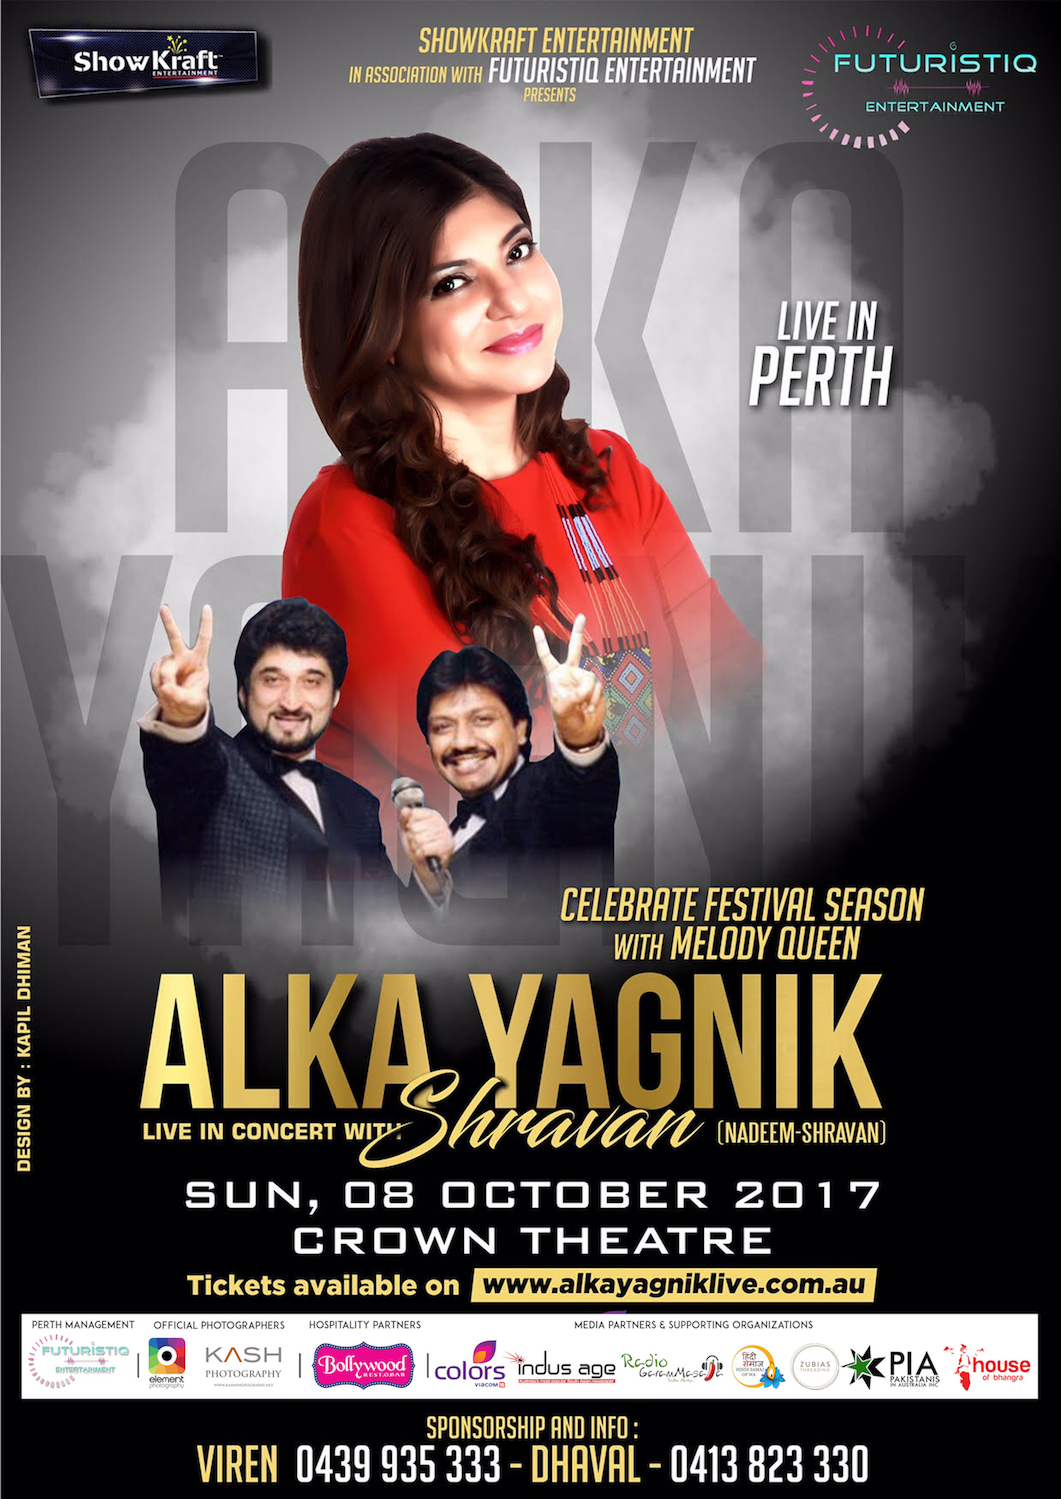 Alka Yagnik and Shravan LIve In Concert – Bollywood